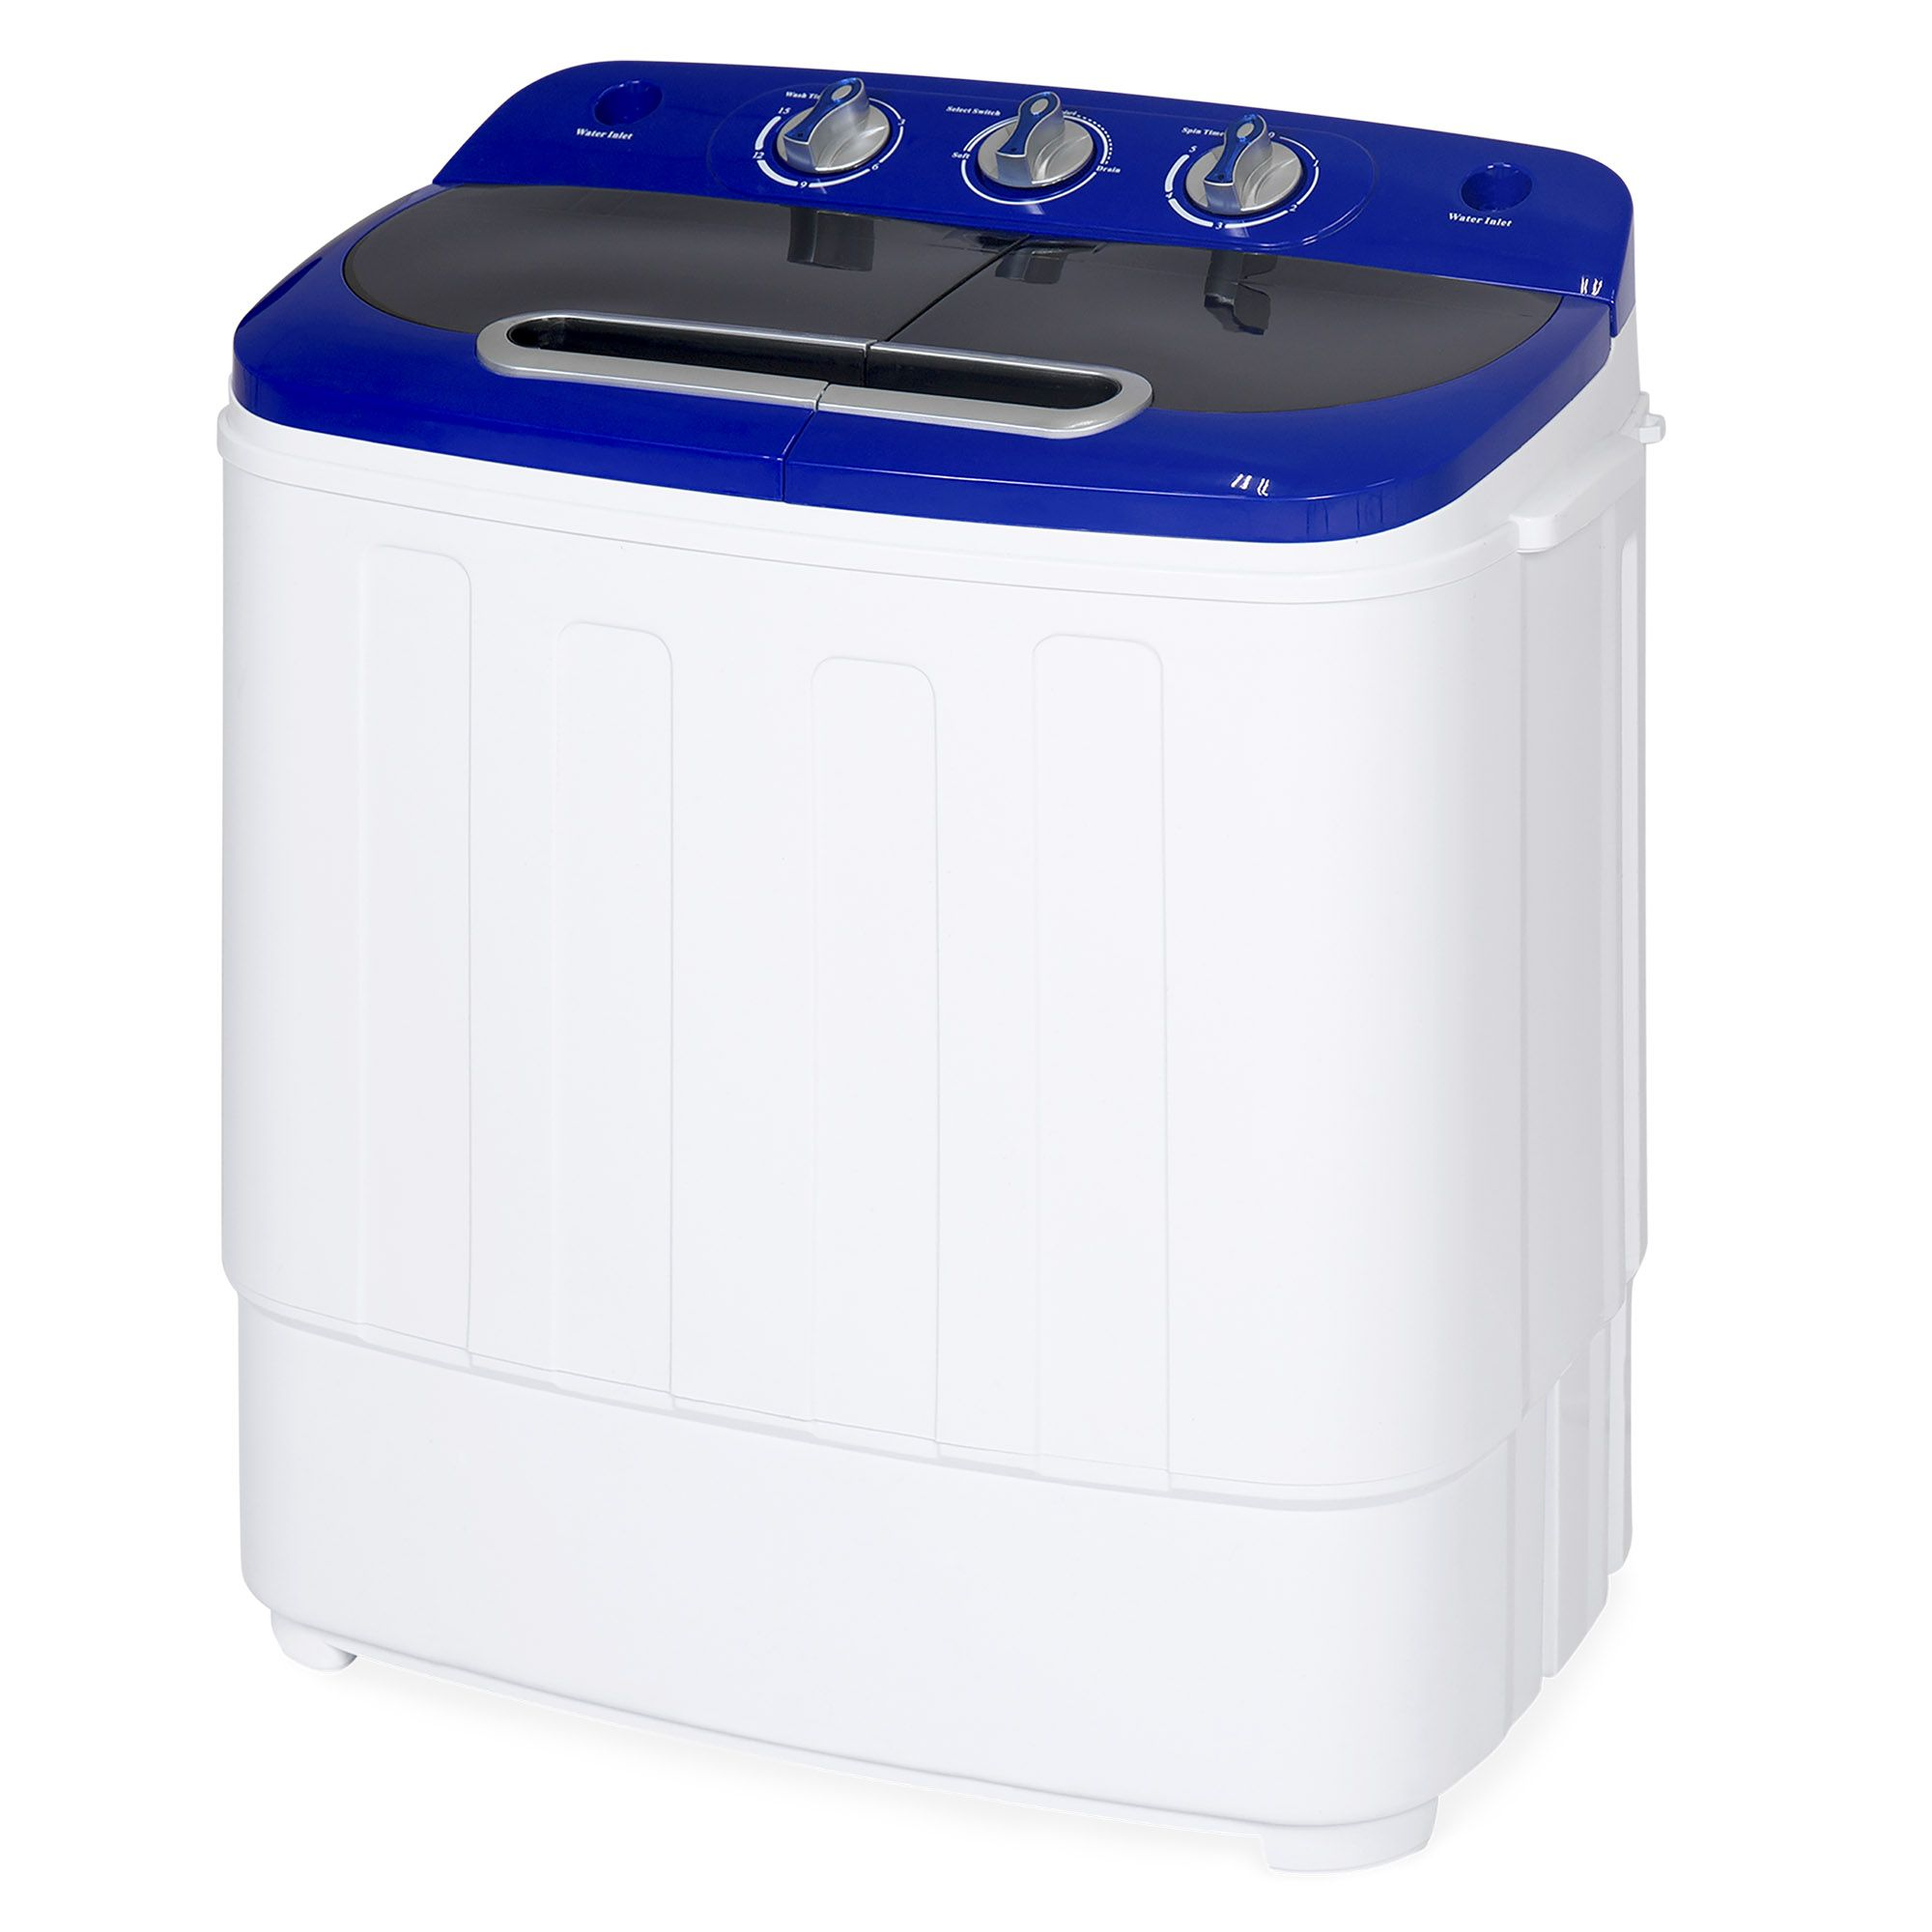 Save 100 On This Portable Washer And Dryer At Walmart It S